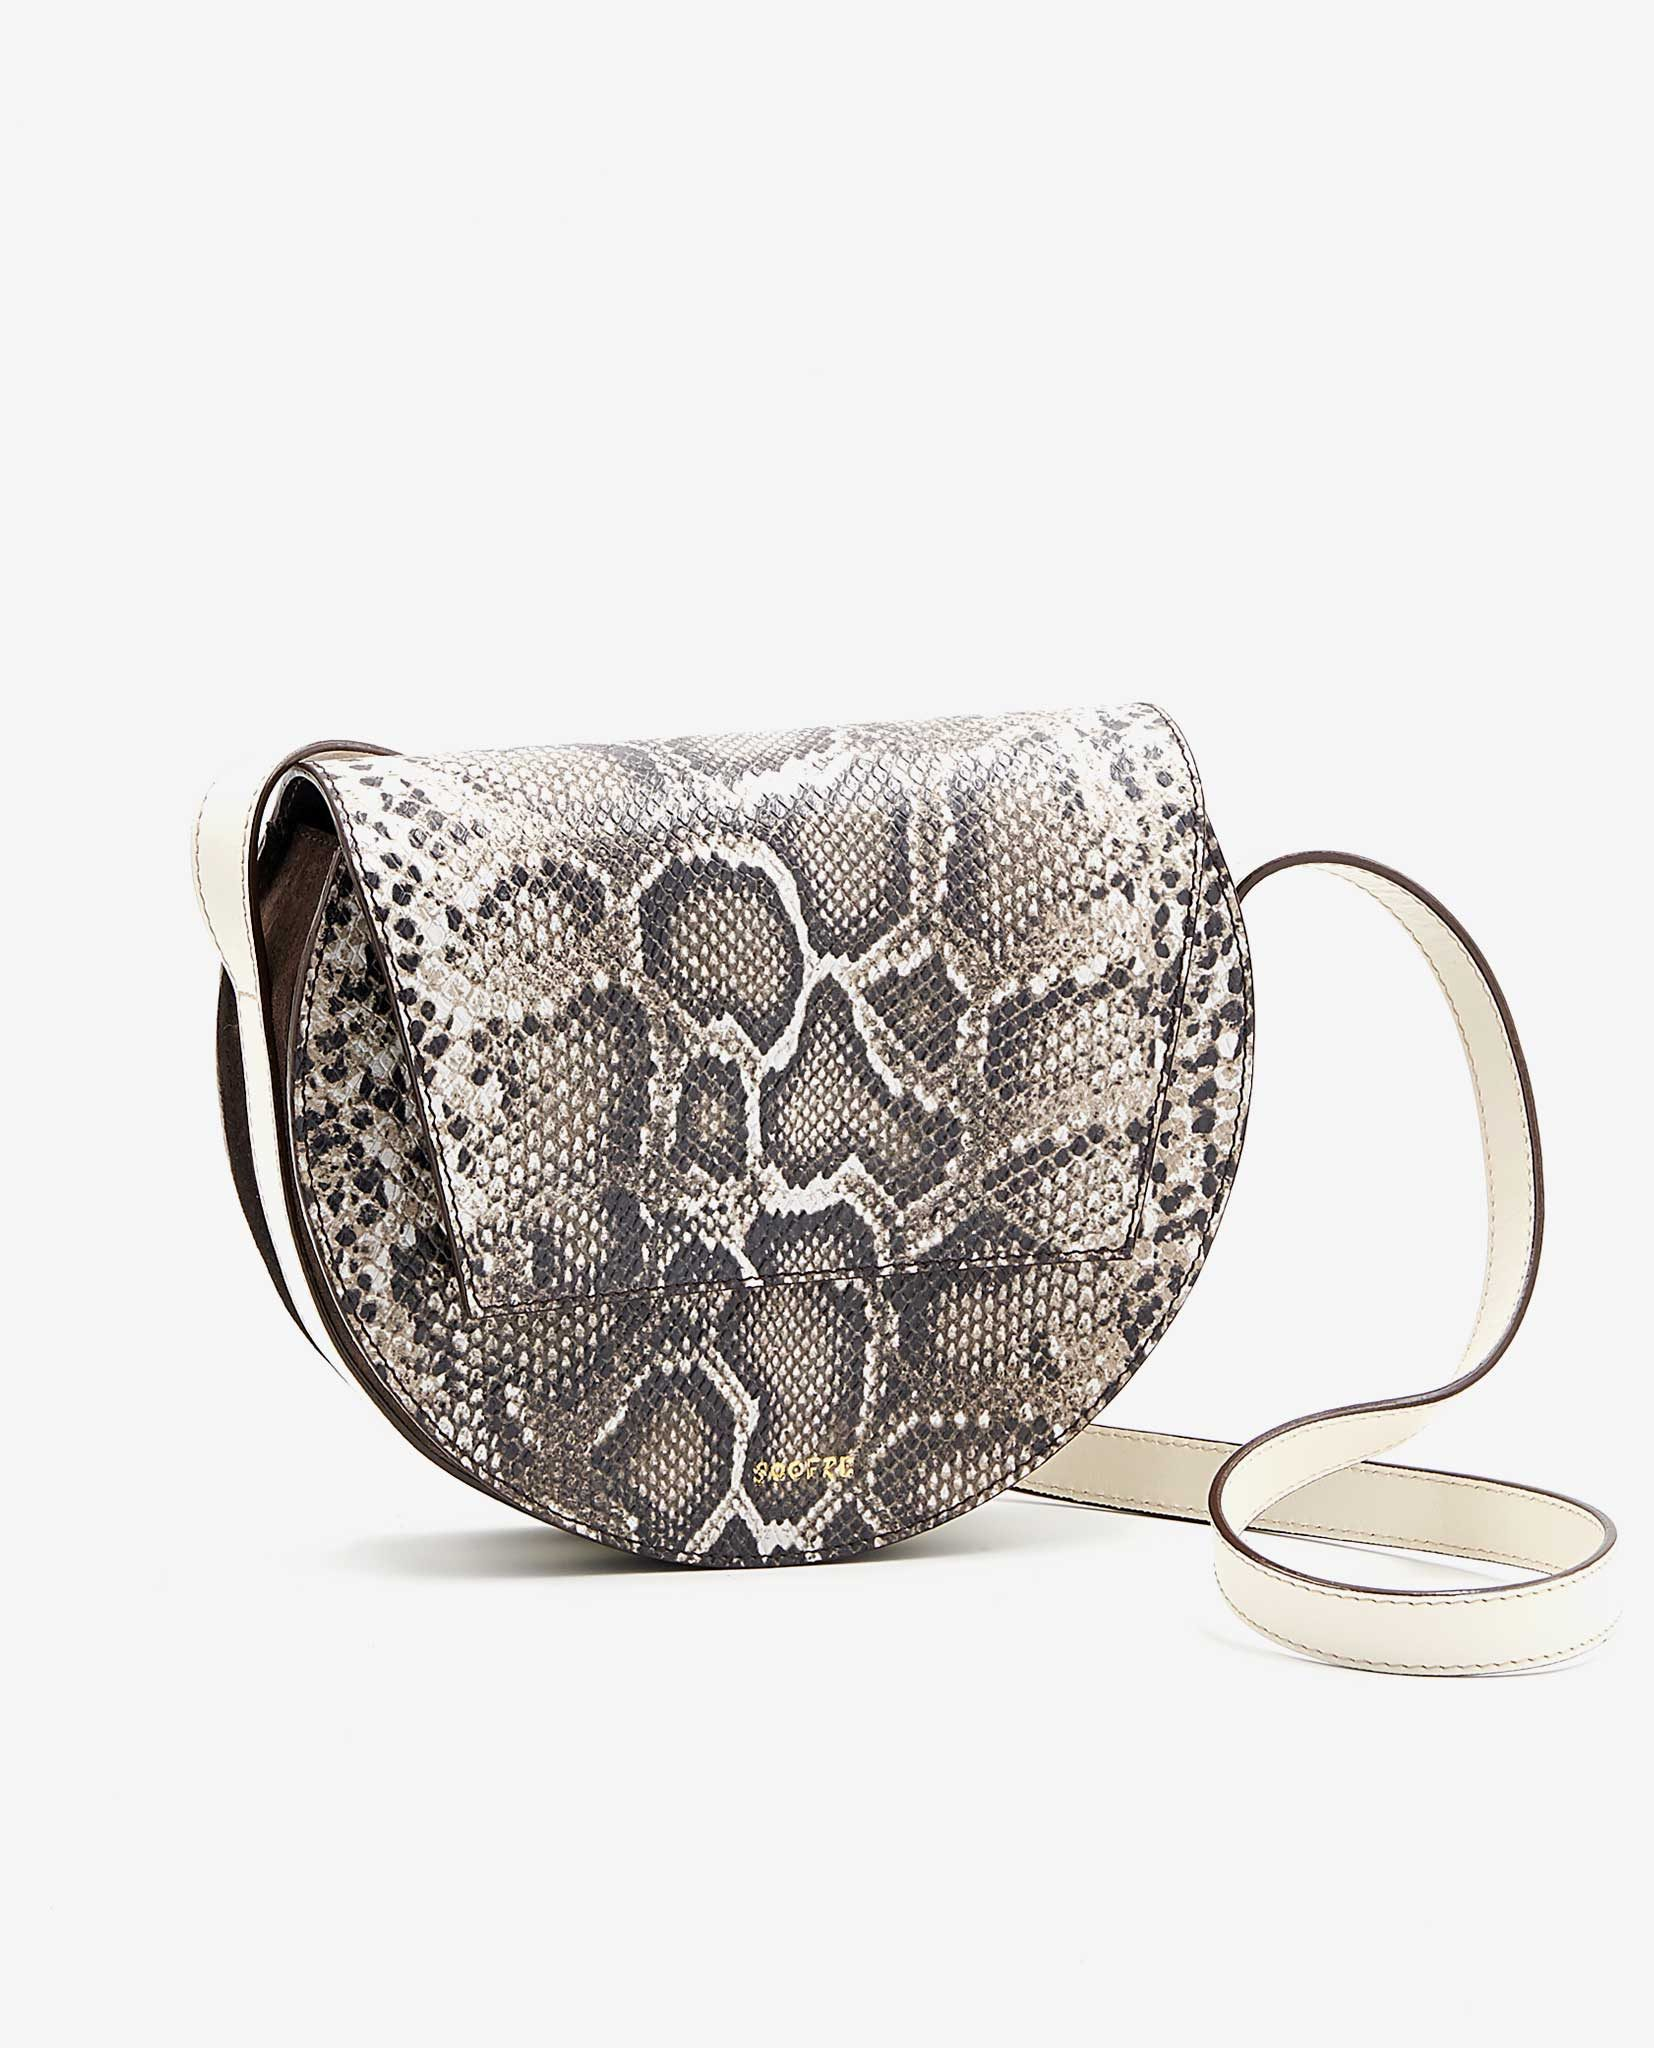 SOOFRE-Berlin-unique-Crossbody-Purse-snake-brown-ivory-SIDES